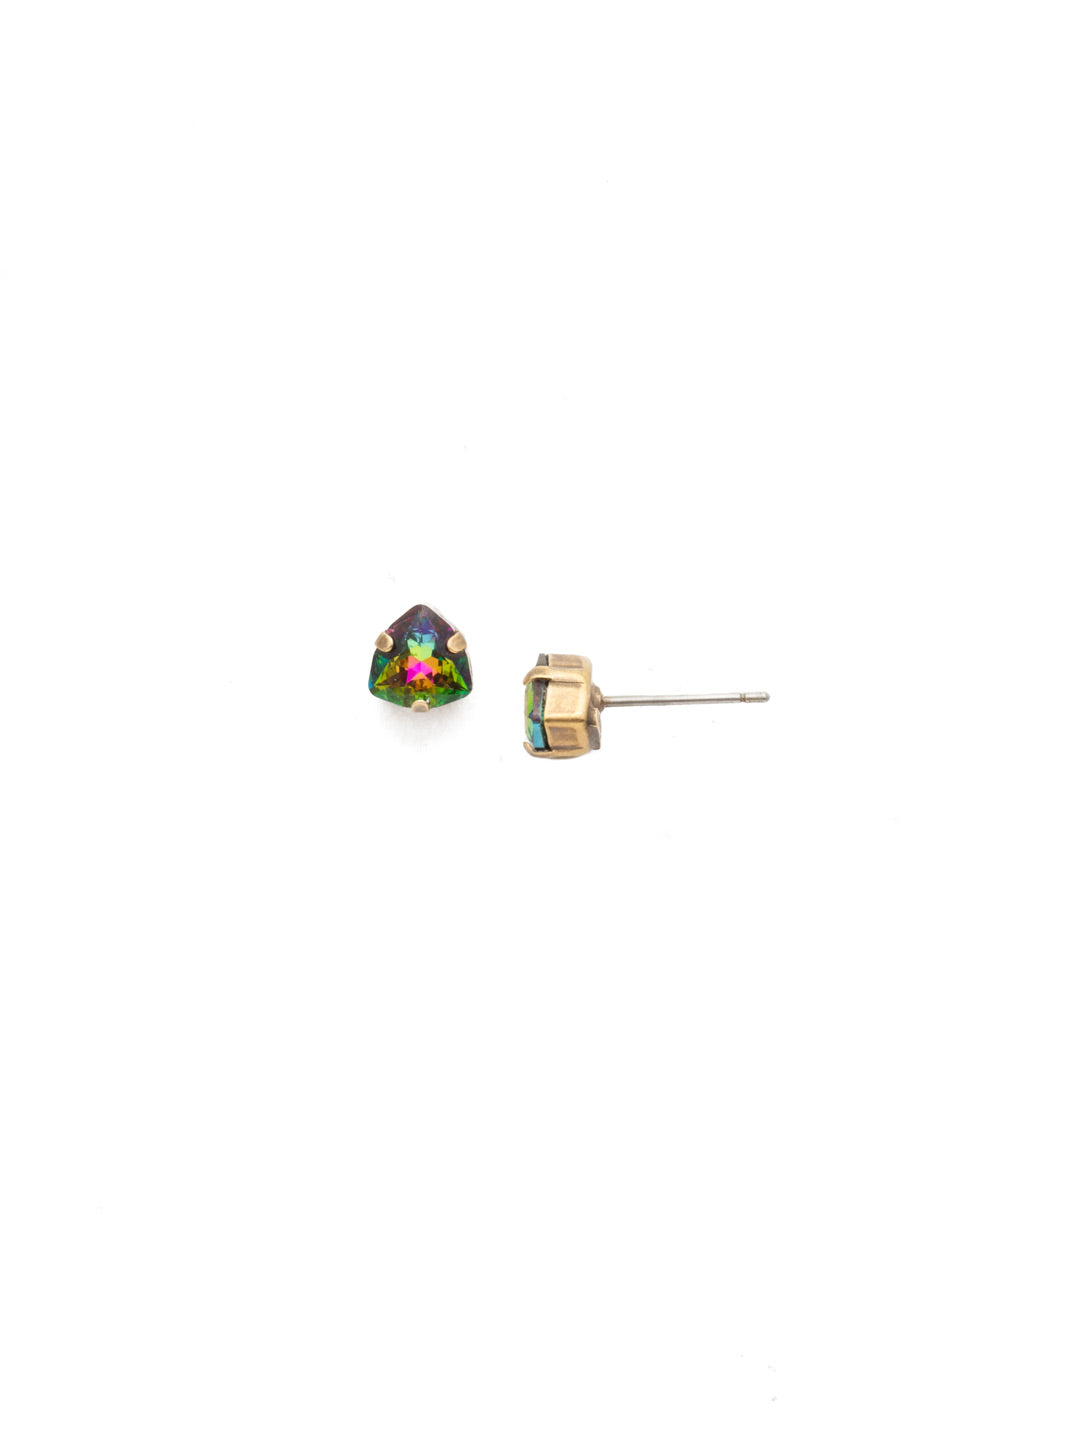 Sedge Stud Earrings - EDX1AGIRB